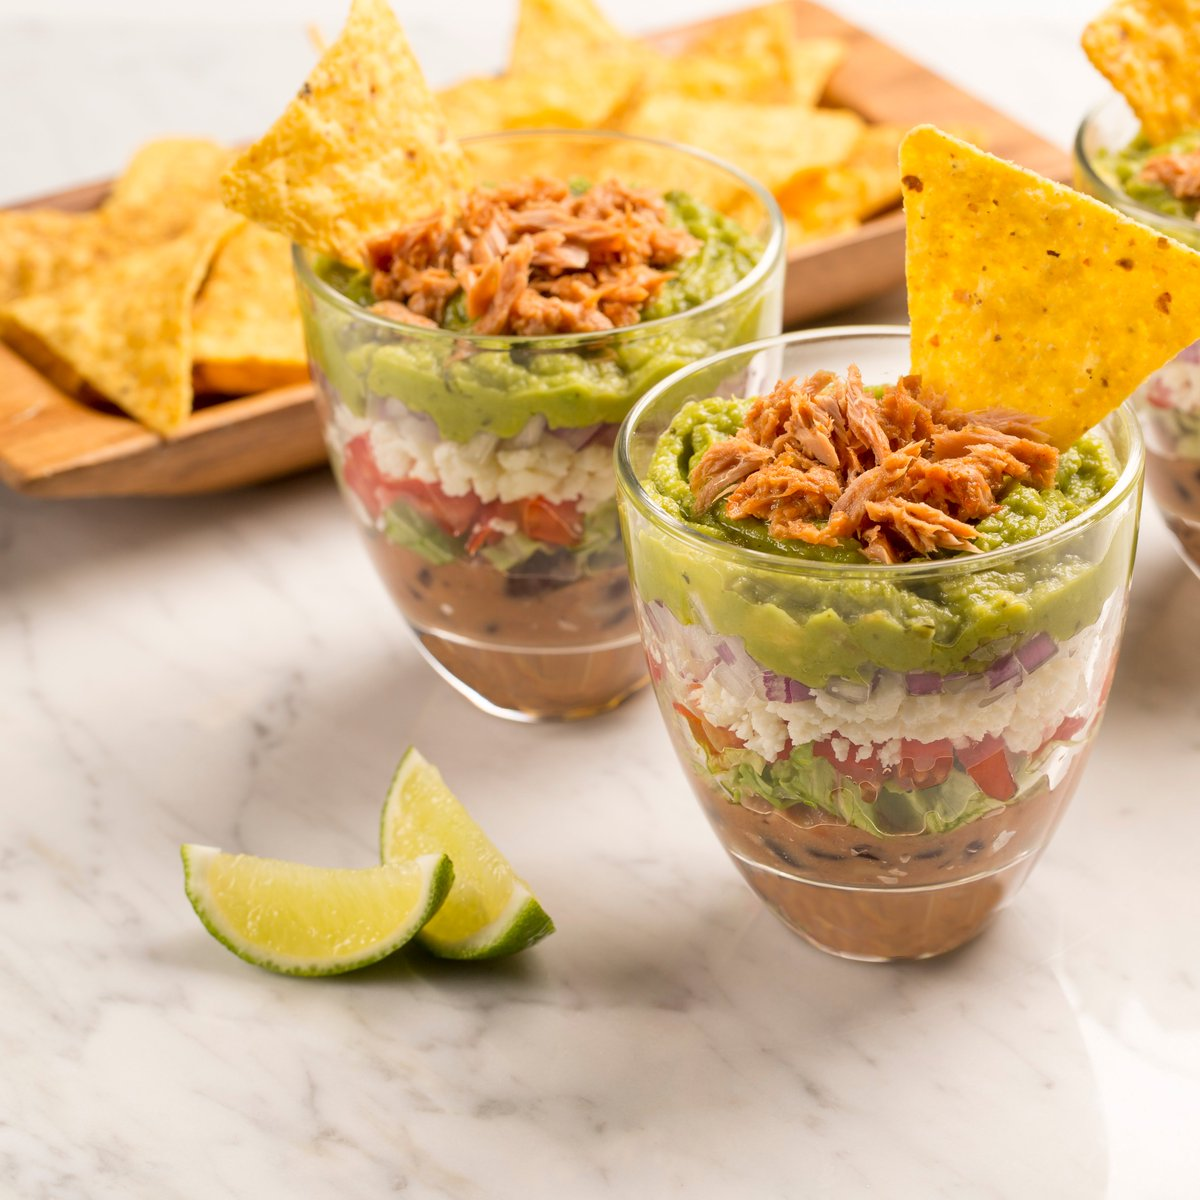 ❆ Always layer up in the winter. ❆ #WednesdayWisdom Spicy 7-Layer Dip Cups for #BigGame → bit.ly/7LayerDipCups